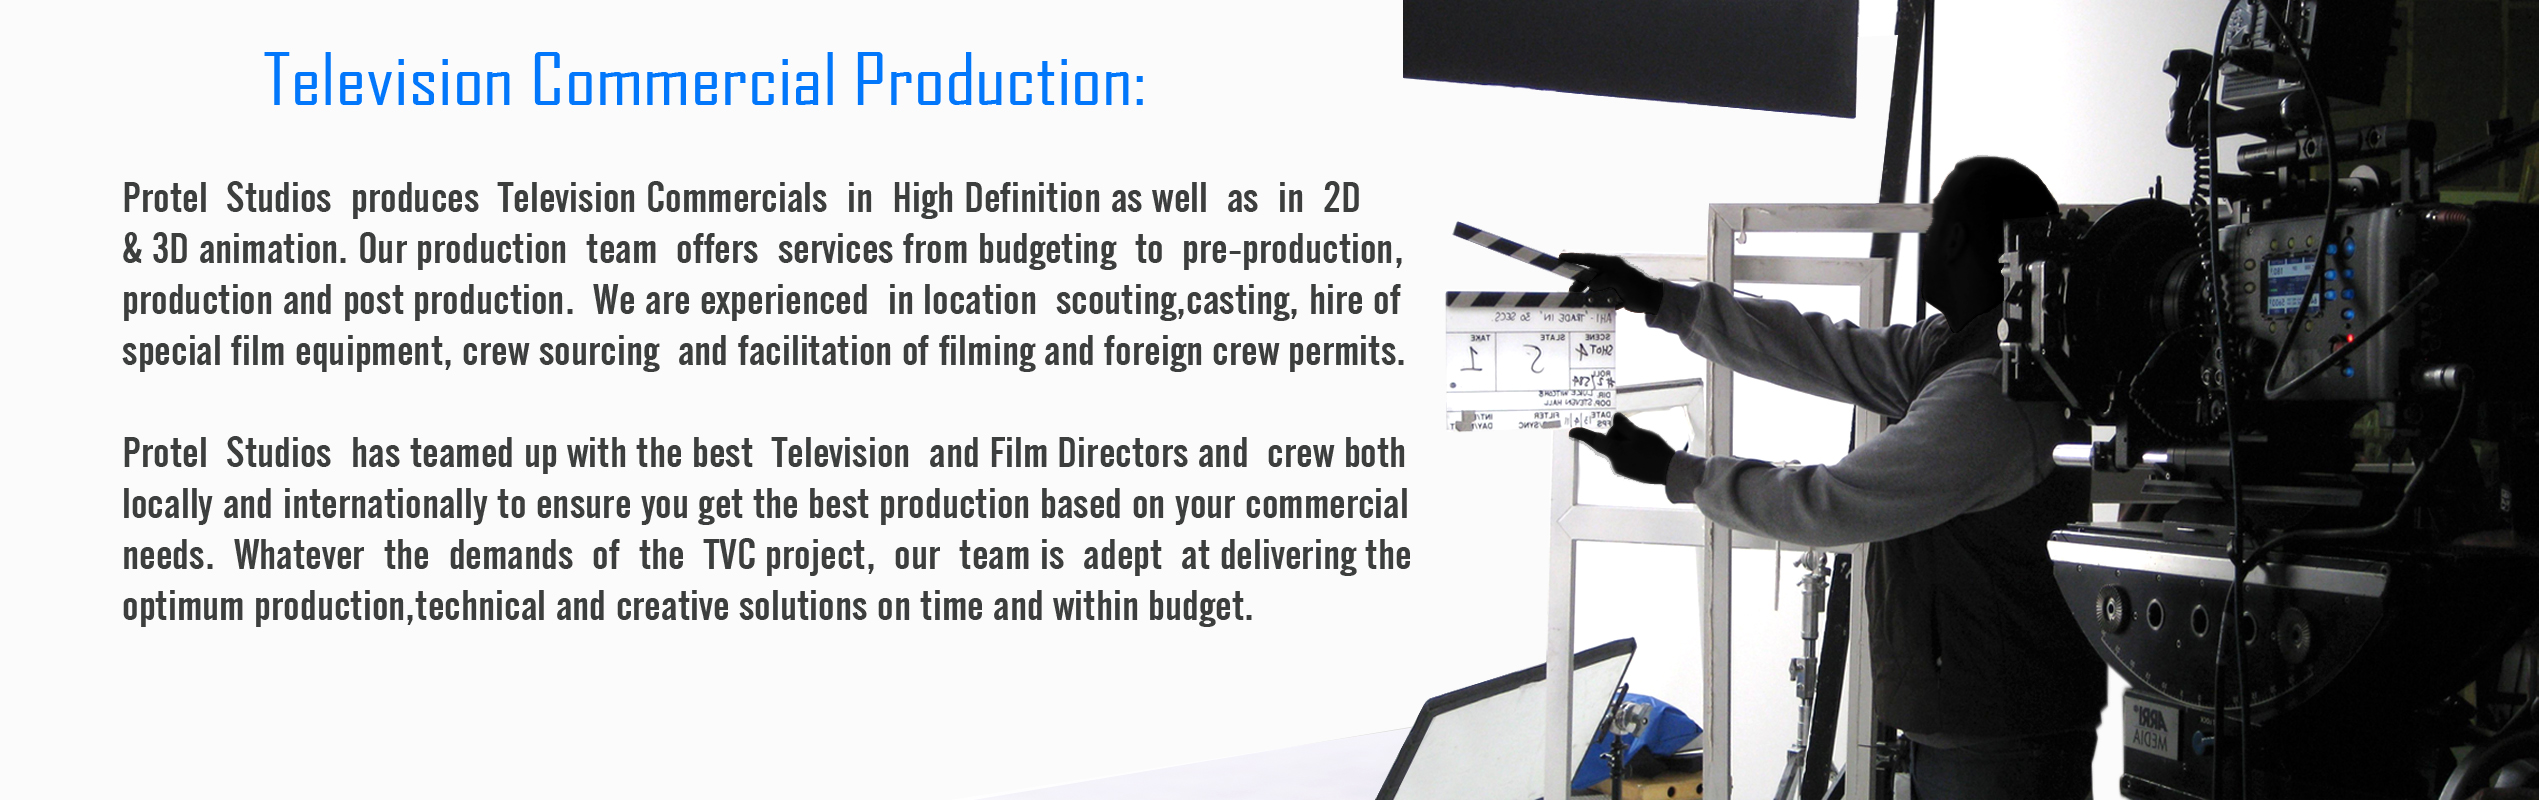 Television Commercial Production X